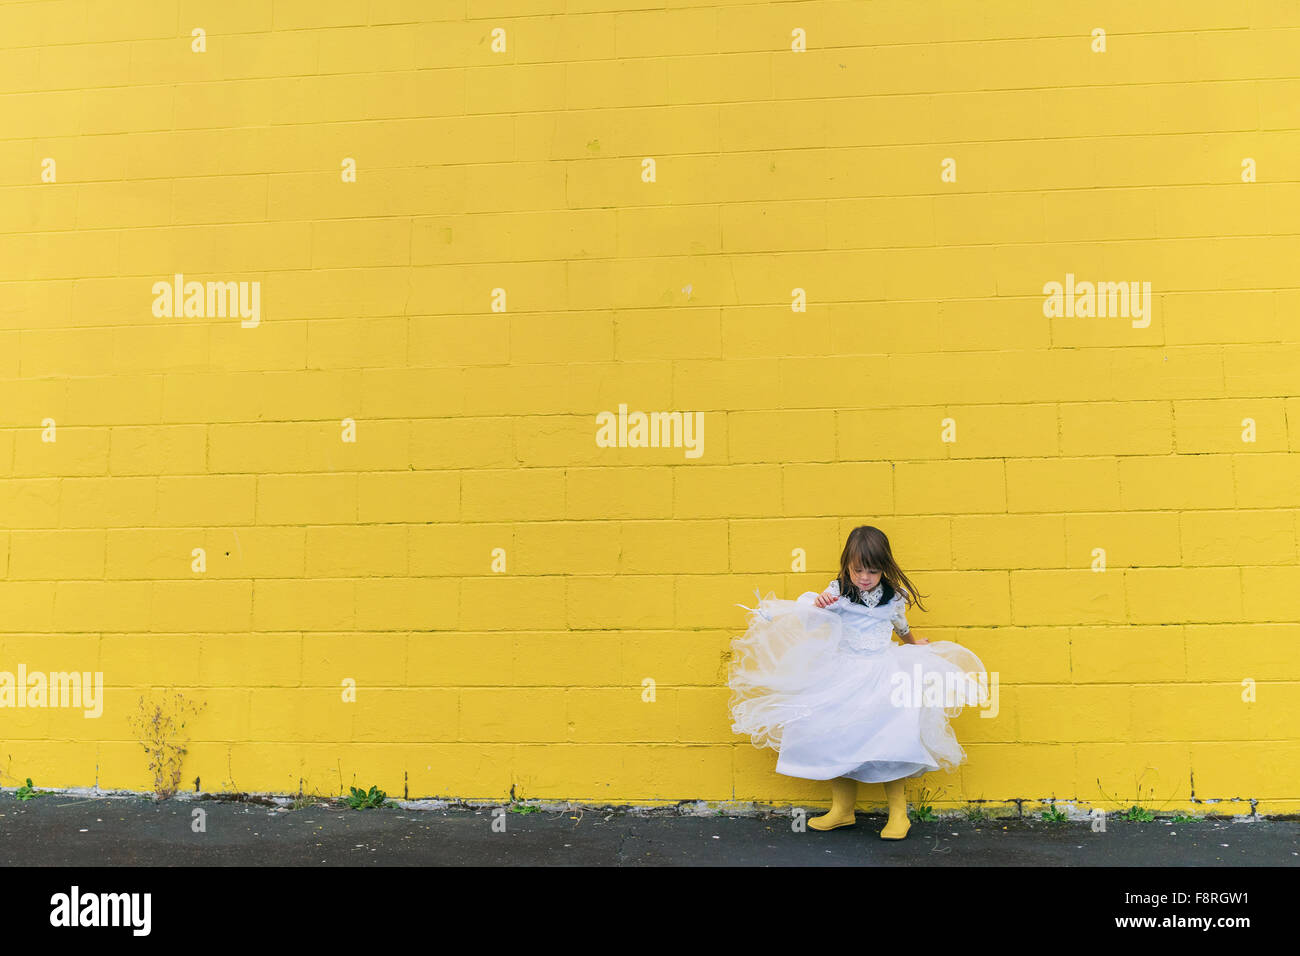 Girl twirling in dress by yellow wall - Stock Image